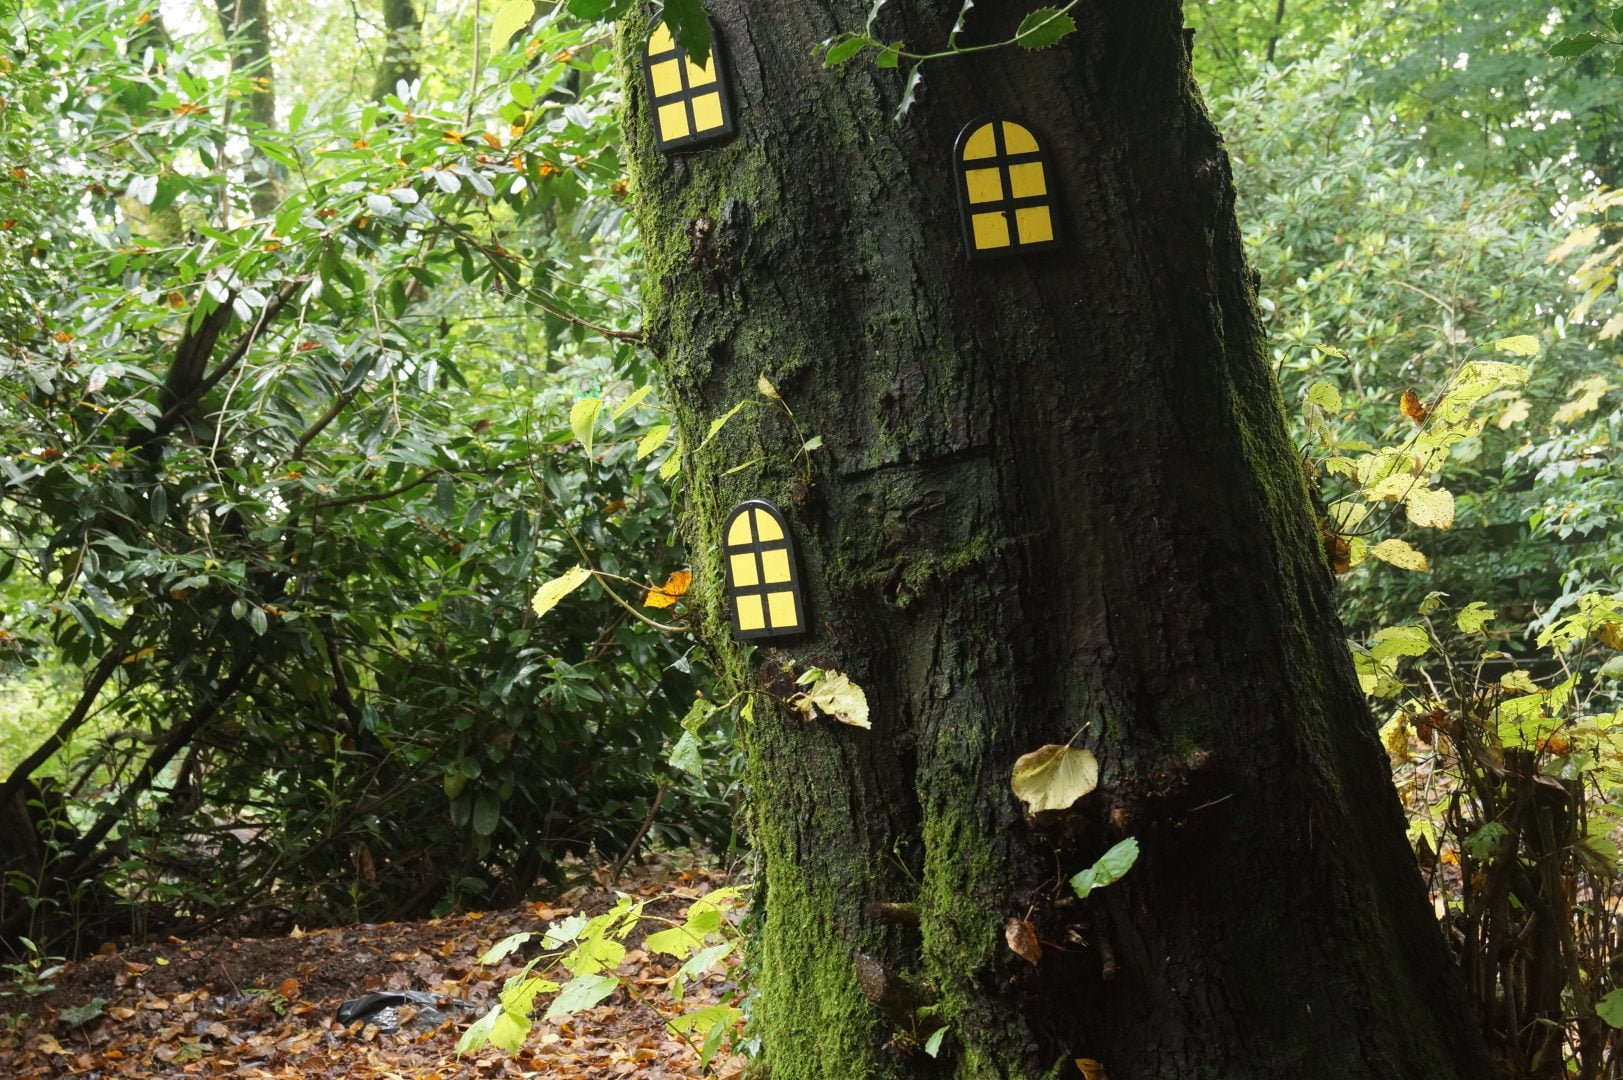 a photo of the fairy doors on the tree that I took on one of the days of my work experience